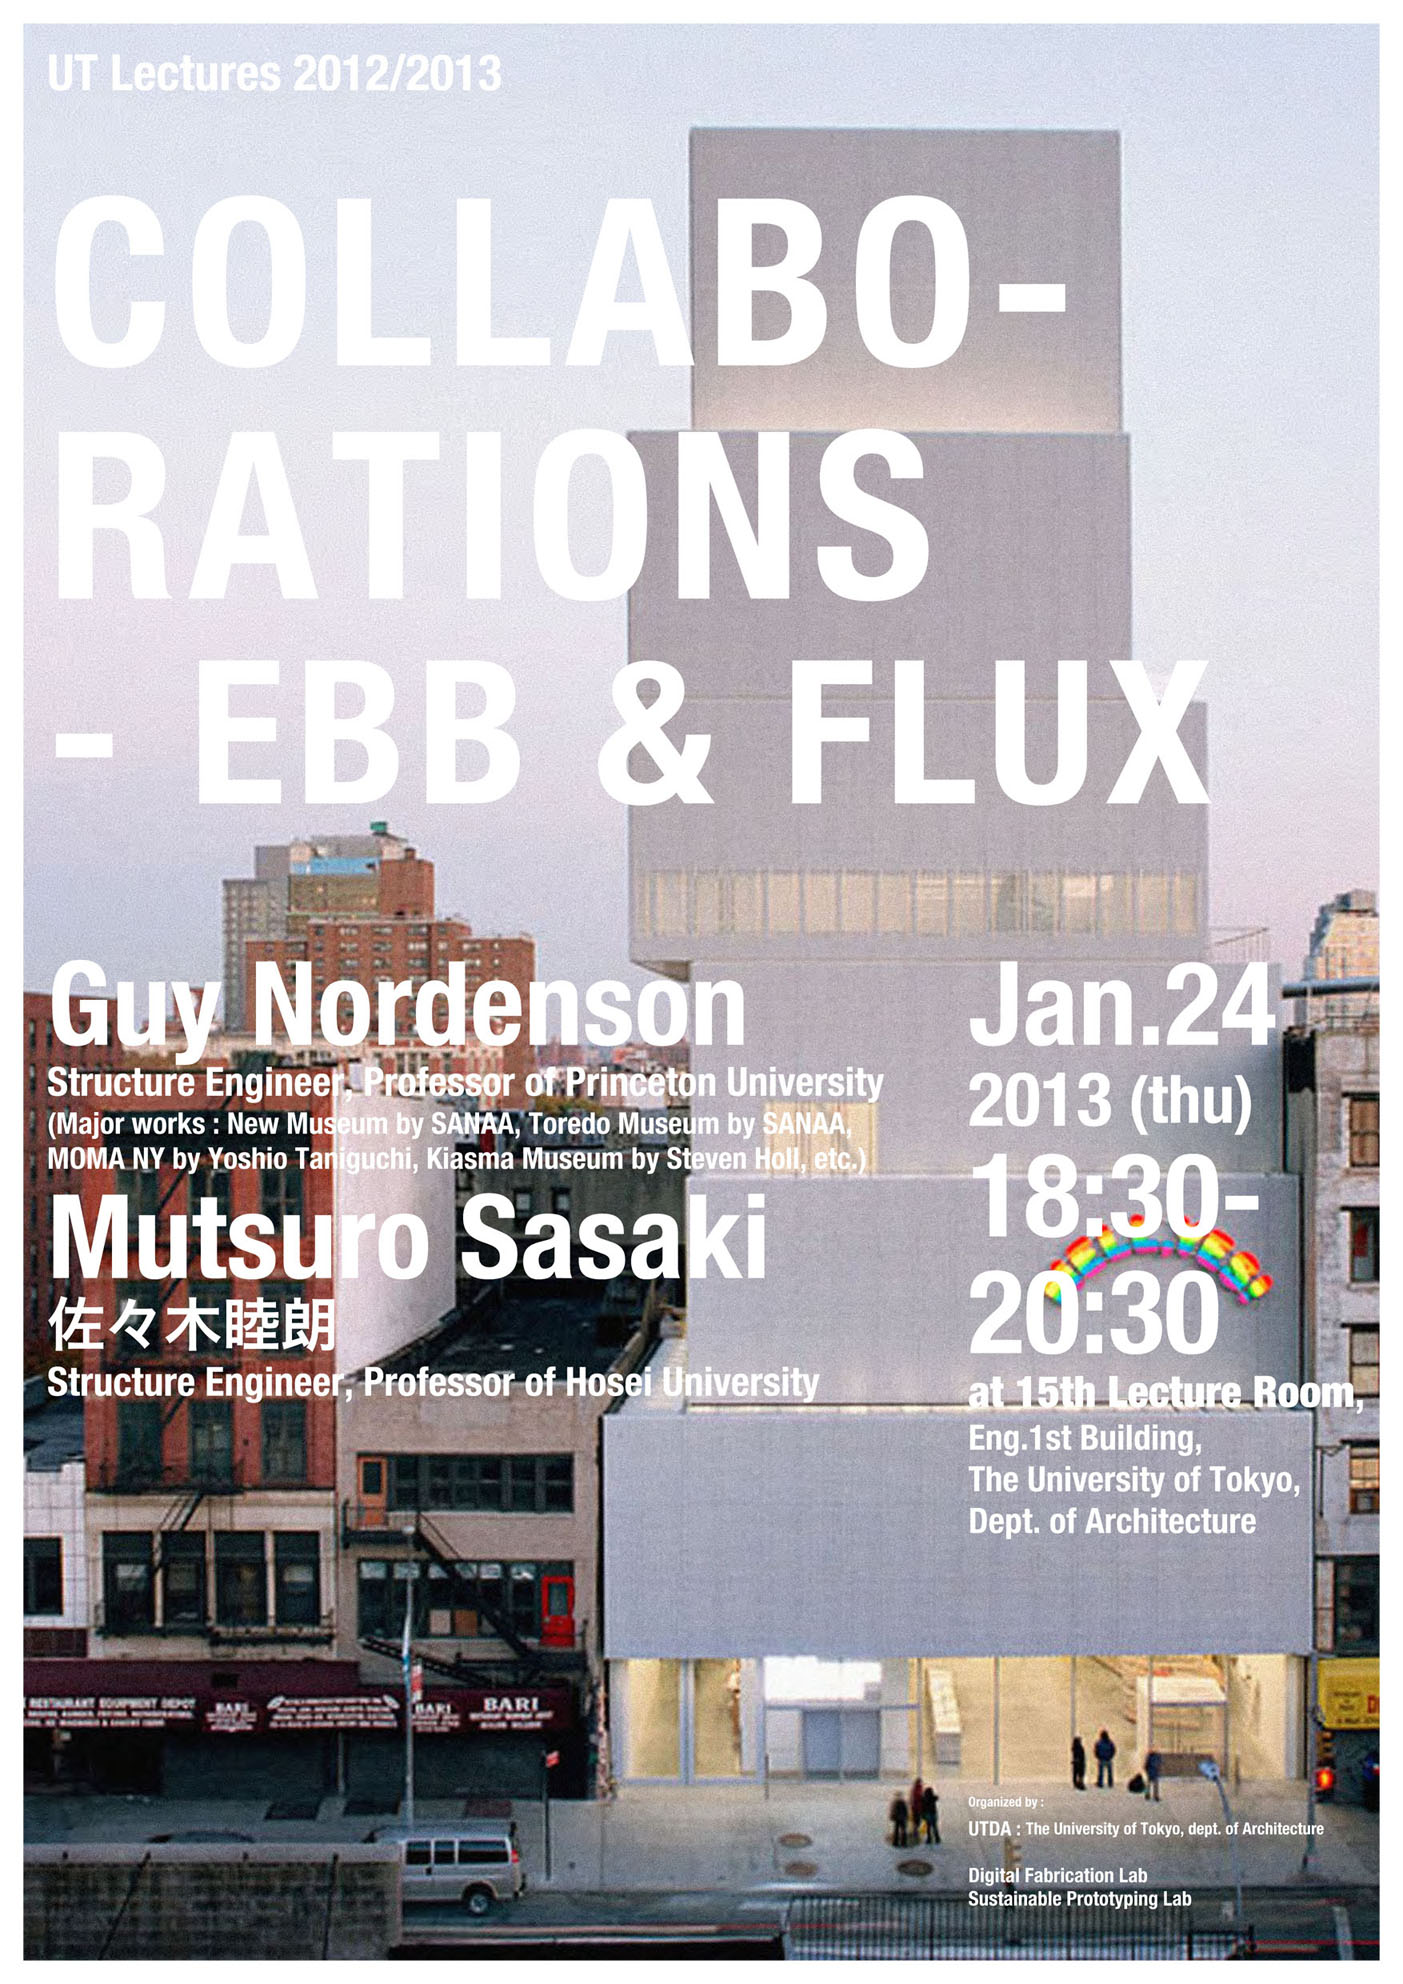 guy nordenson mutsuro sasaki collaborations ebb & flux advanced design studies the university of tokyo